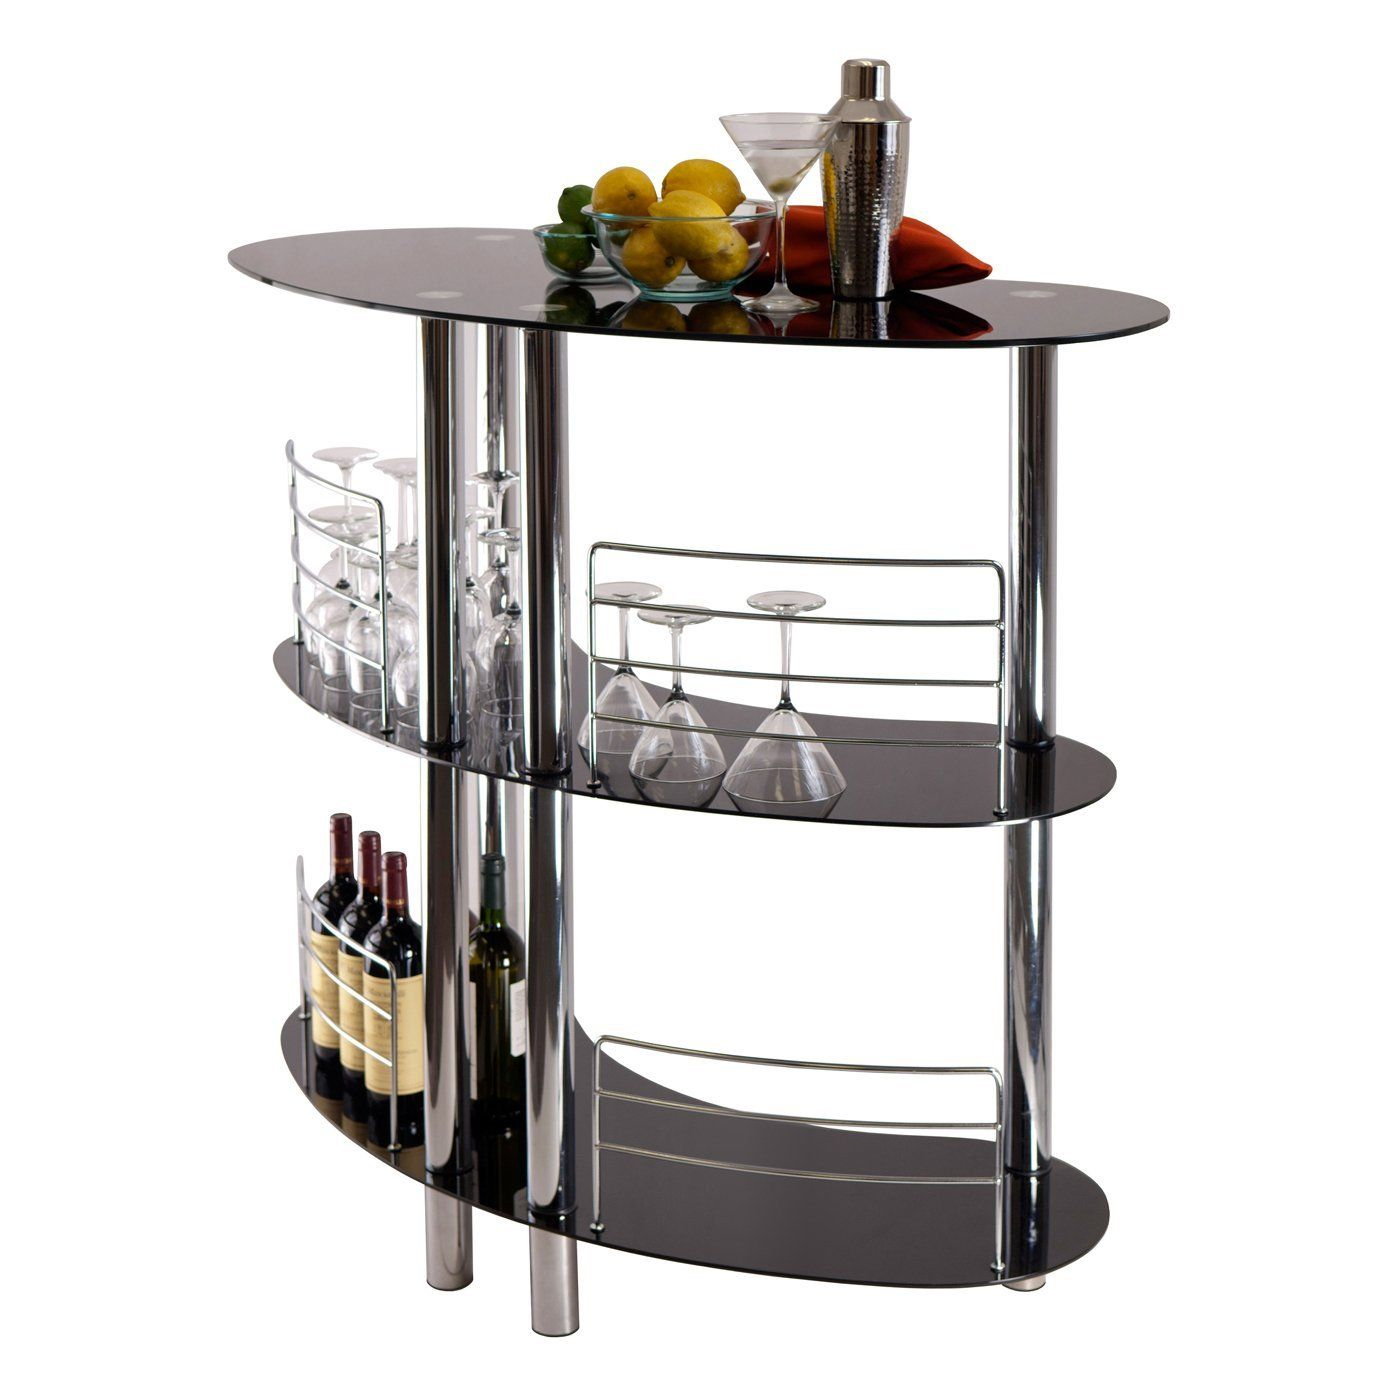 Home Furniture Lowe S Furniture Store Atg Stores - Shop winsome wood 93347 martini entertainment home bar at lowe s canada find our selection of home bar furniture at the lowest price guaranteed with price